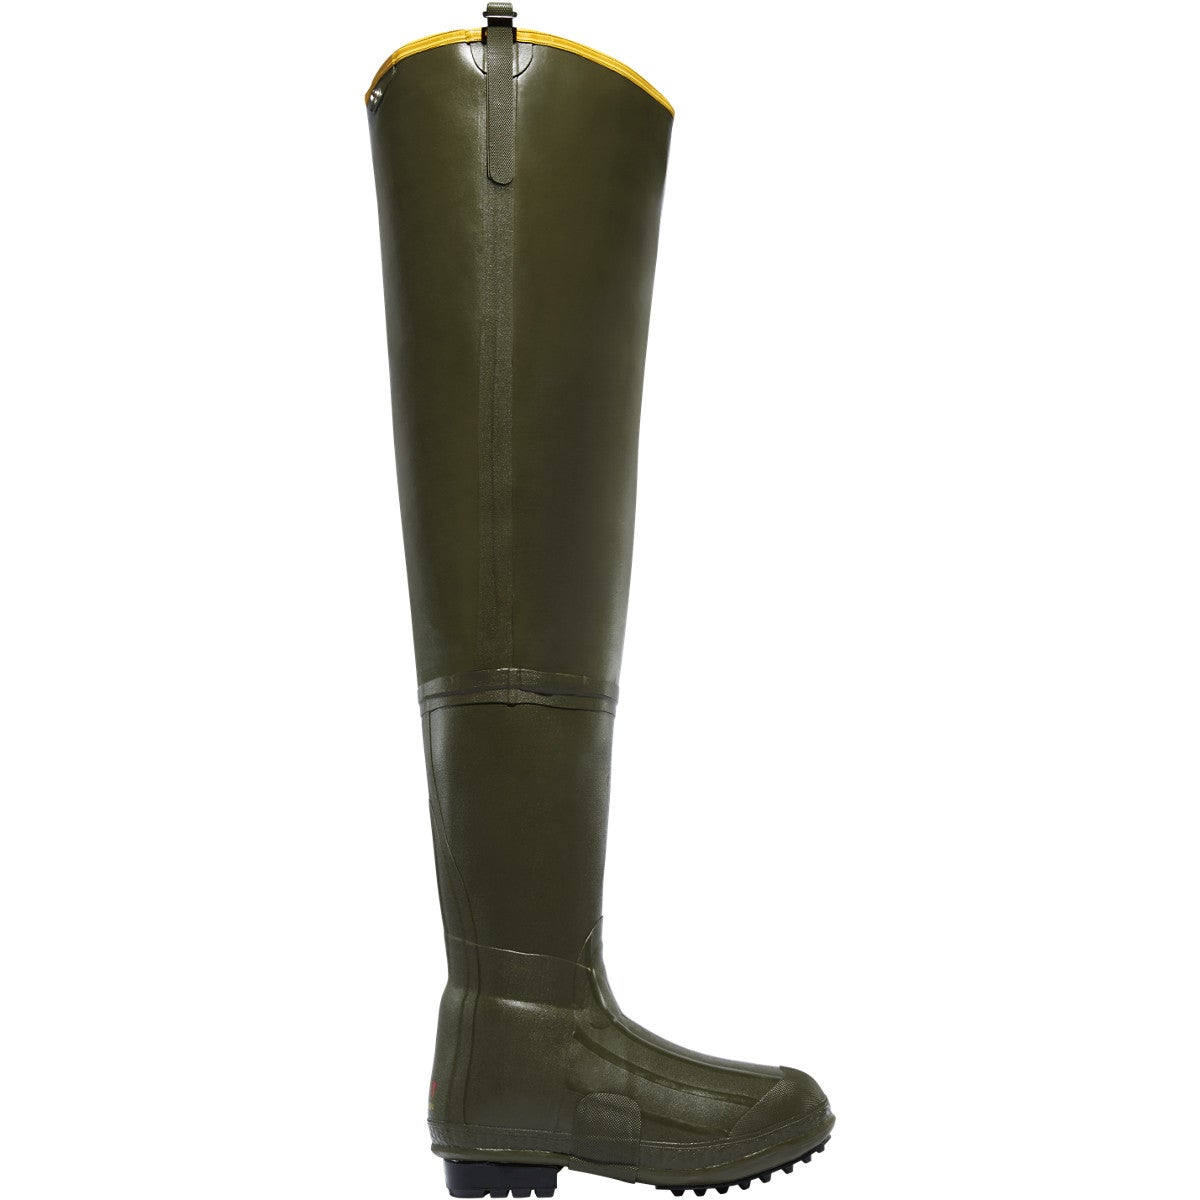 LaCrosse hip boots are the best hip waders.